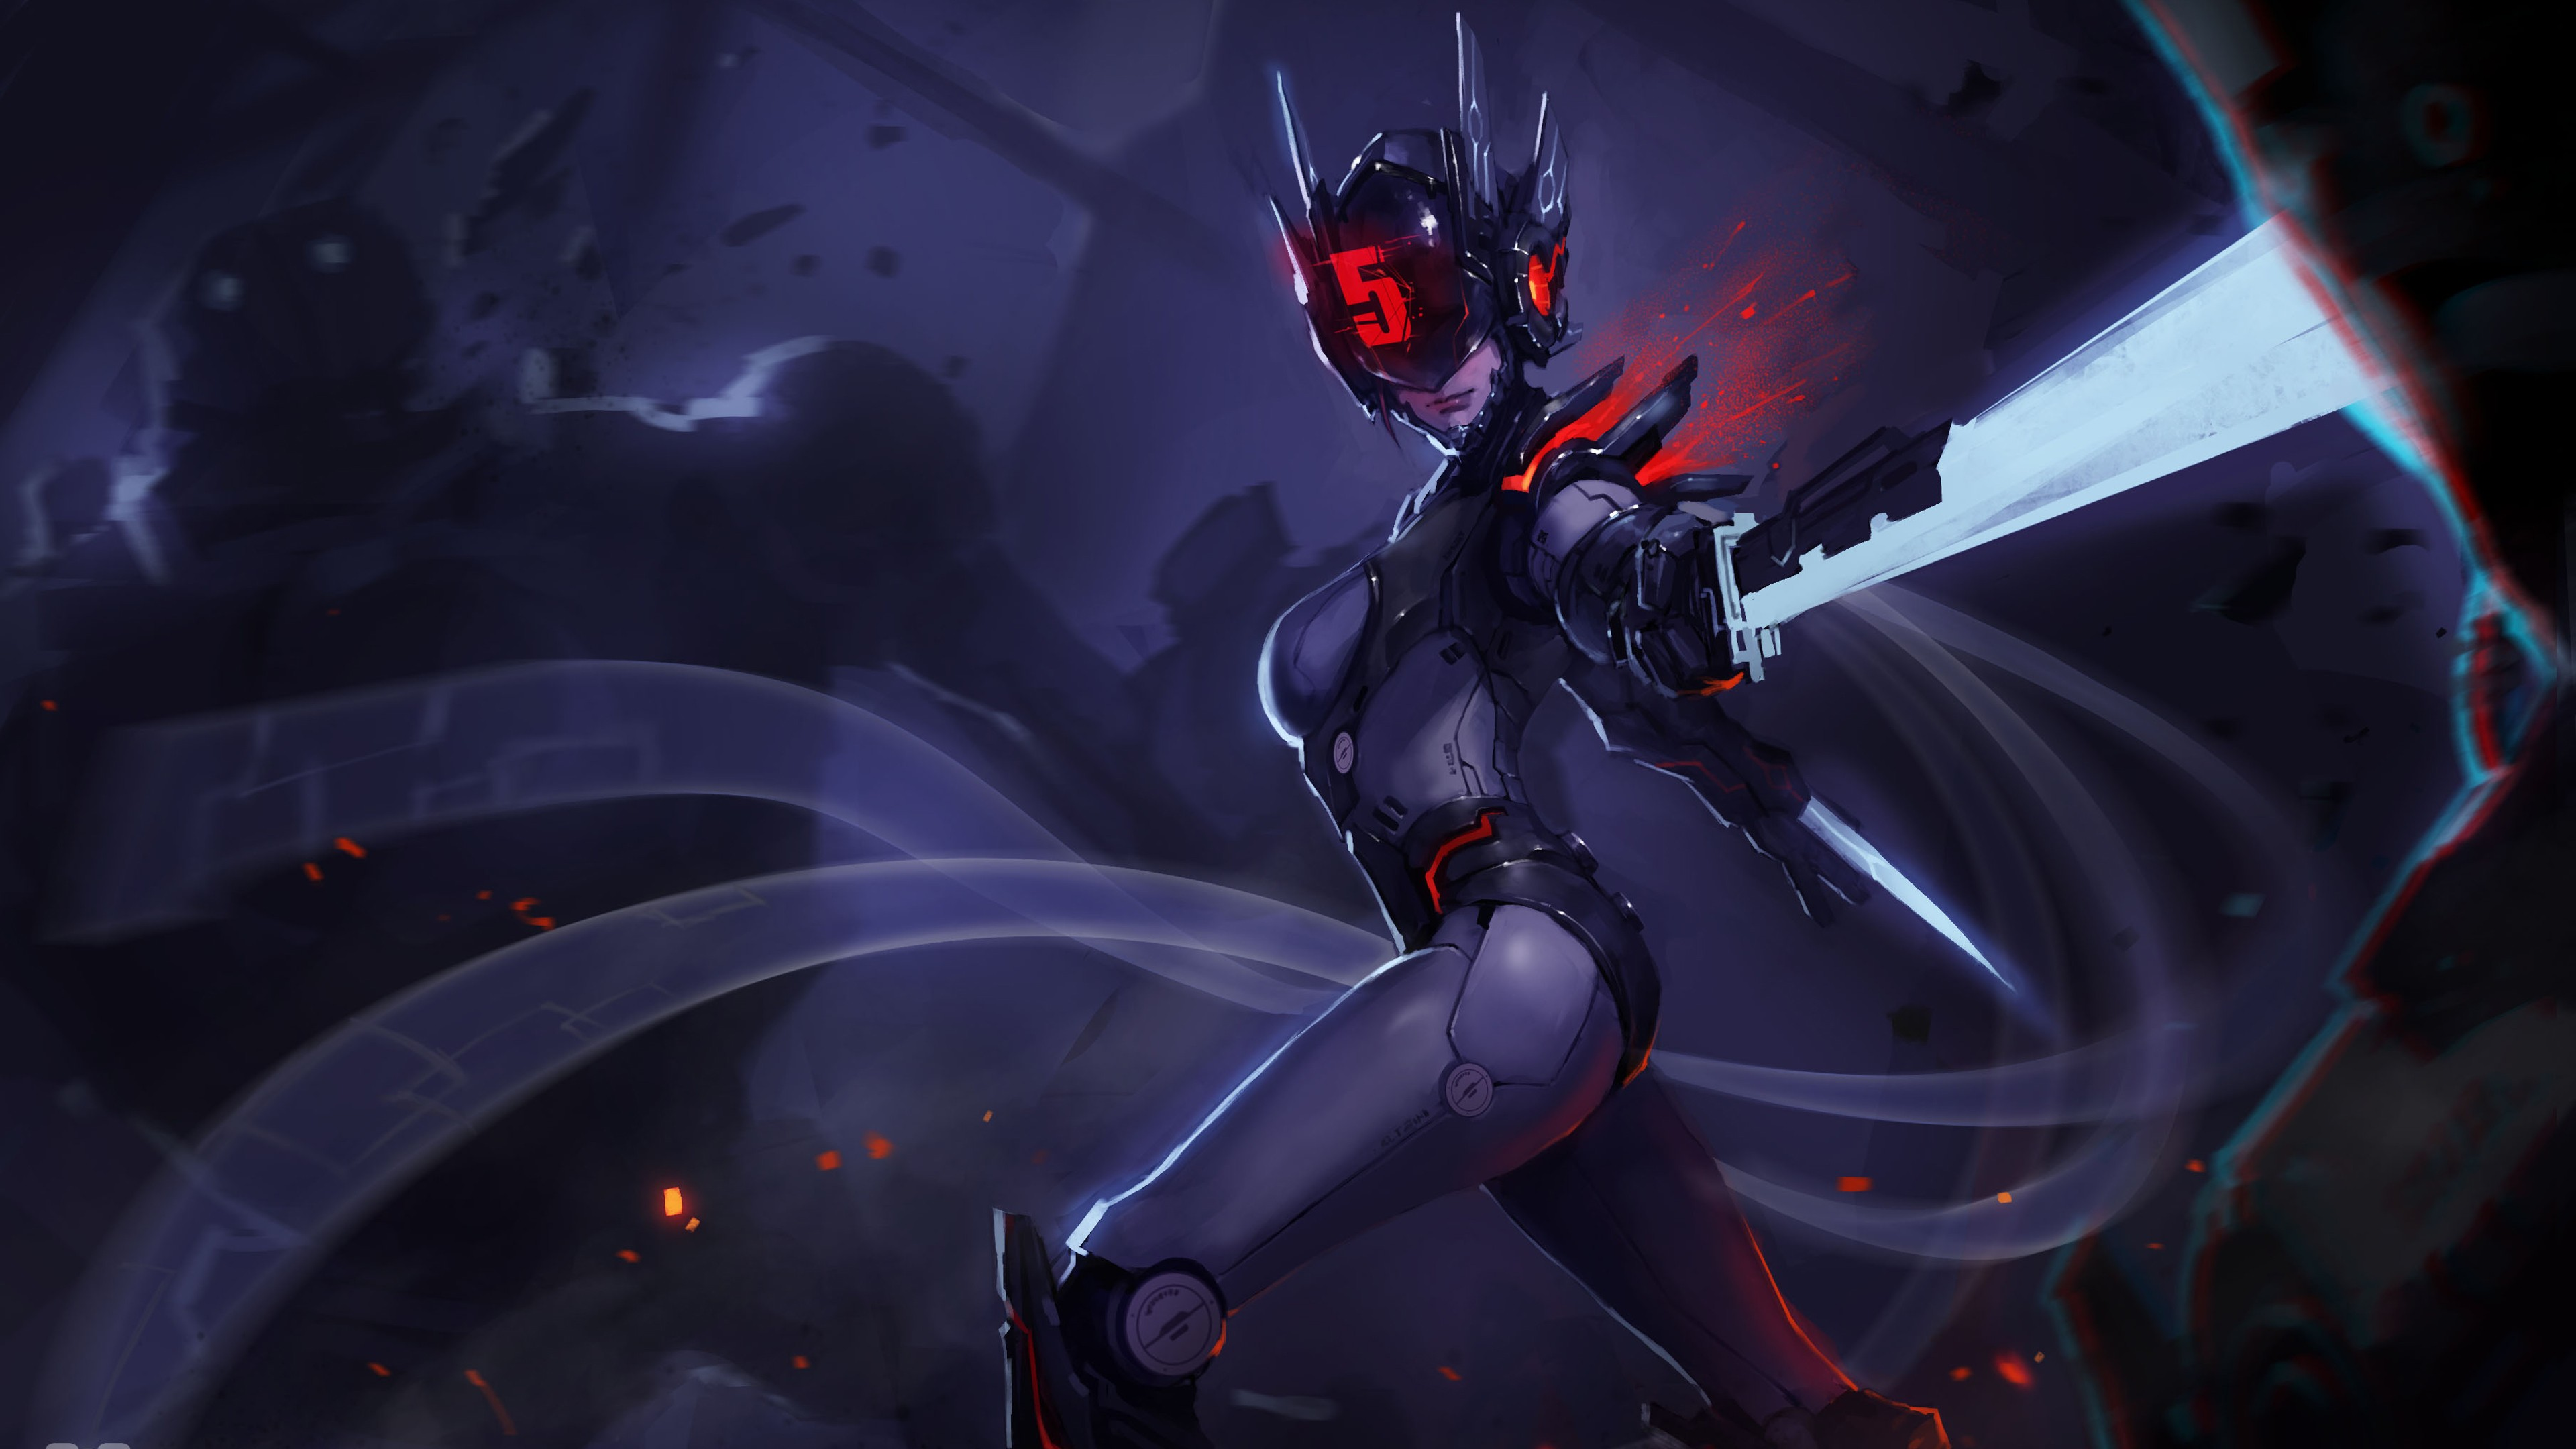 PROJECT Fiora 4k Ultra HD Wallpaper And Background Image